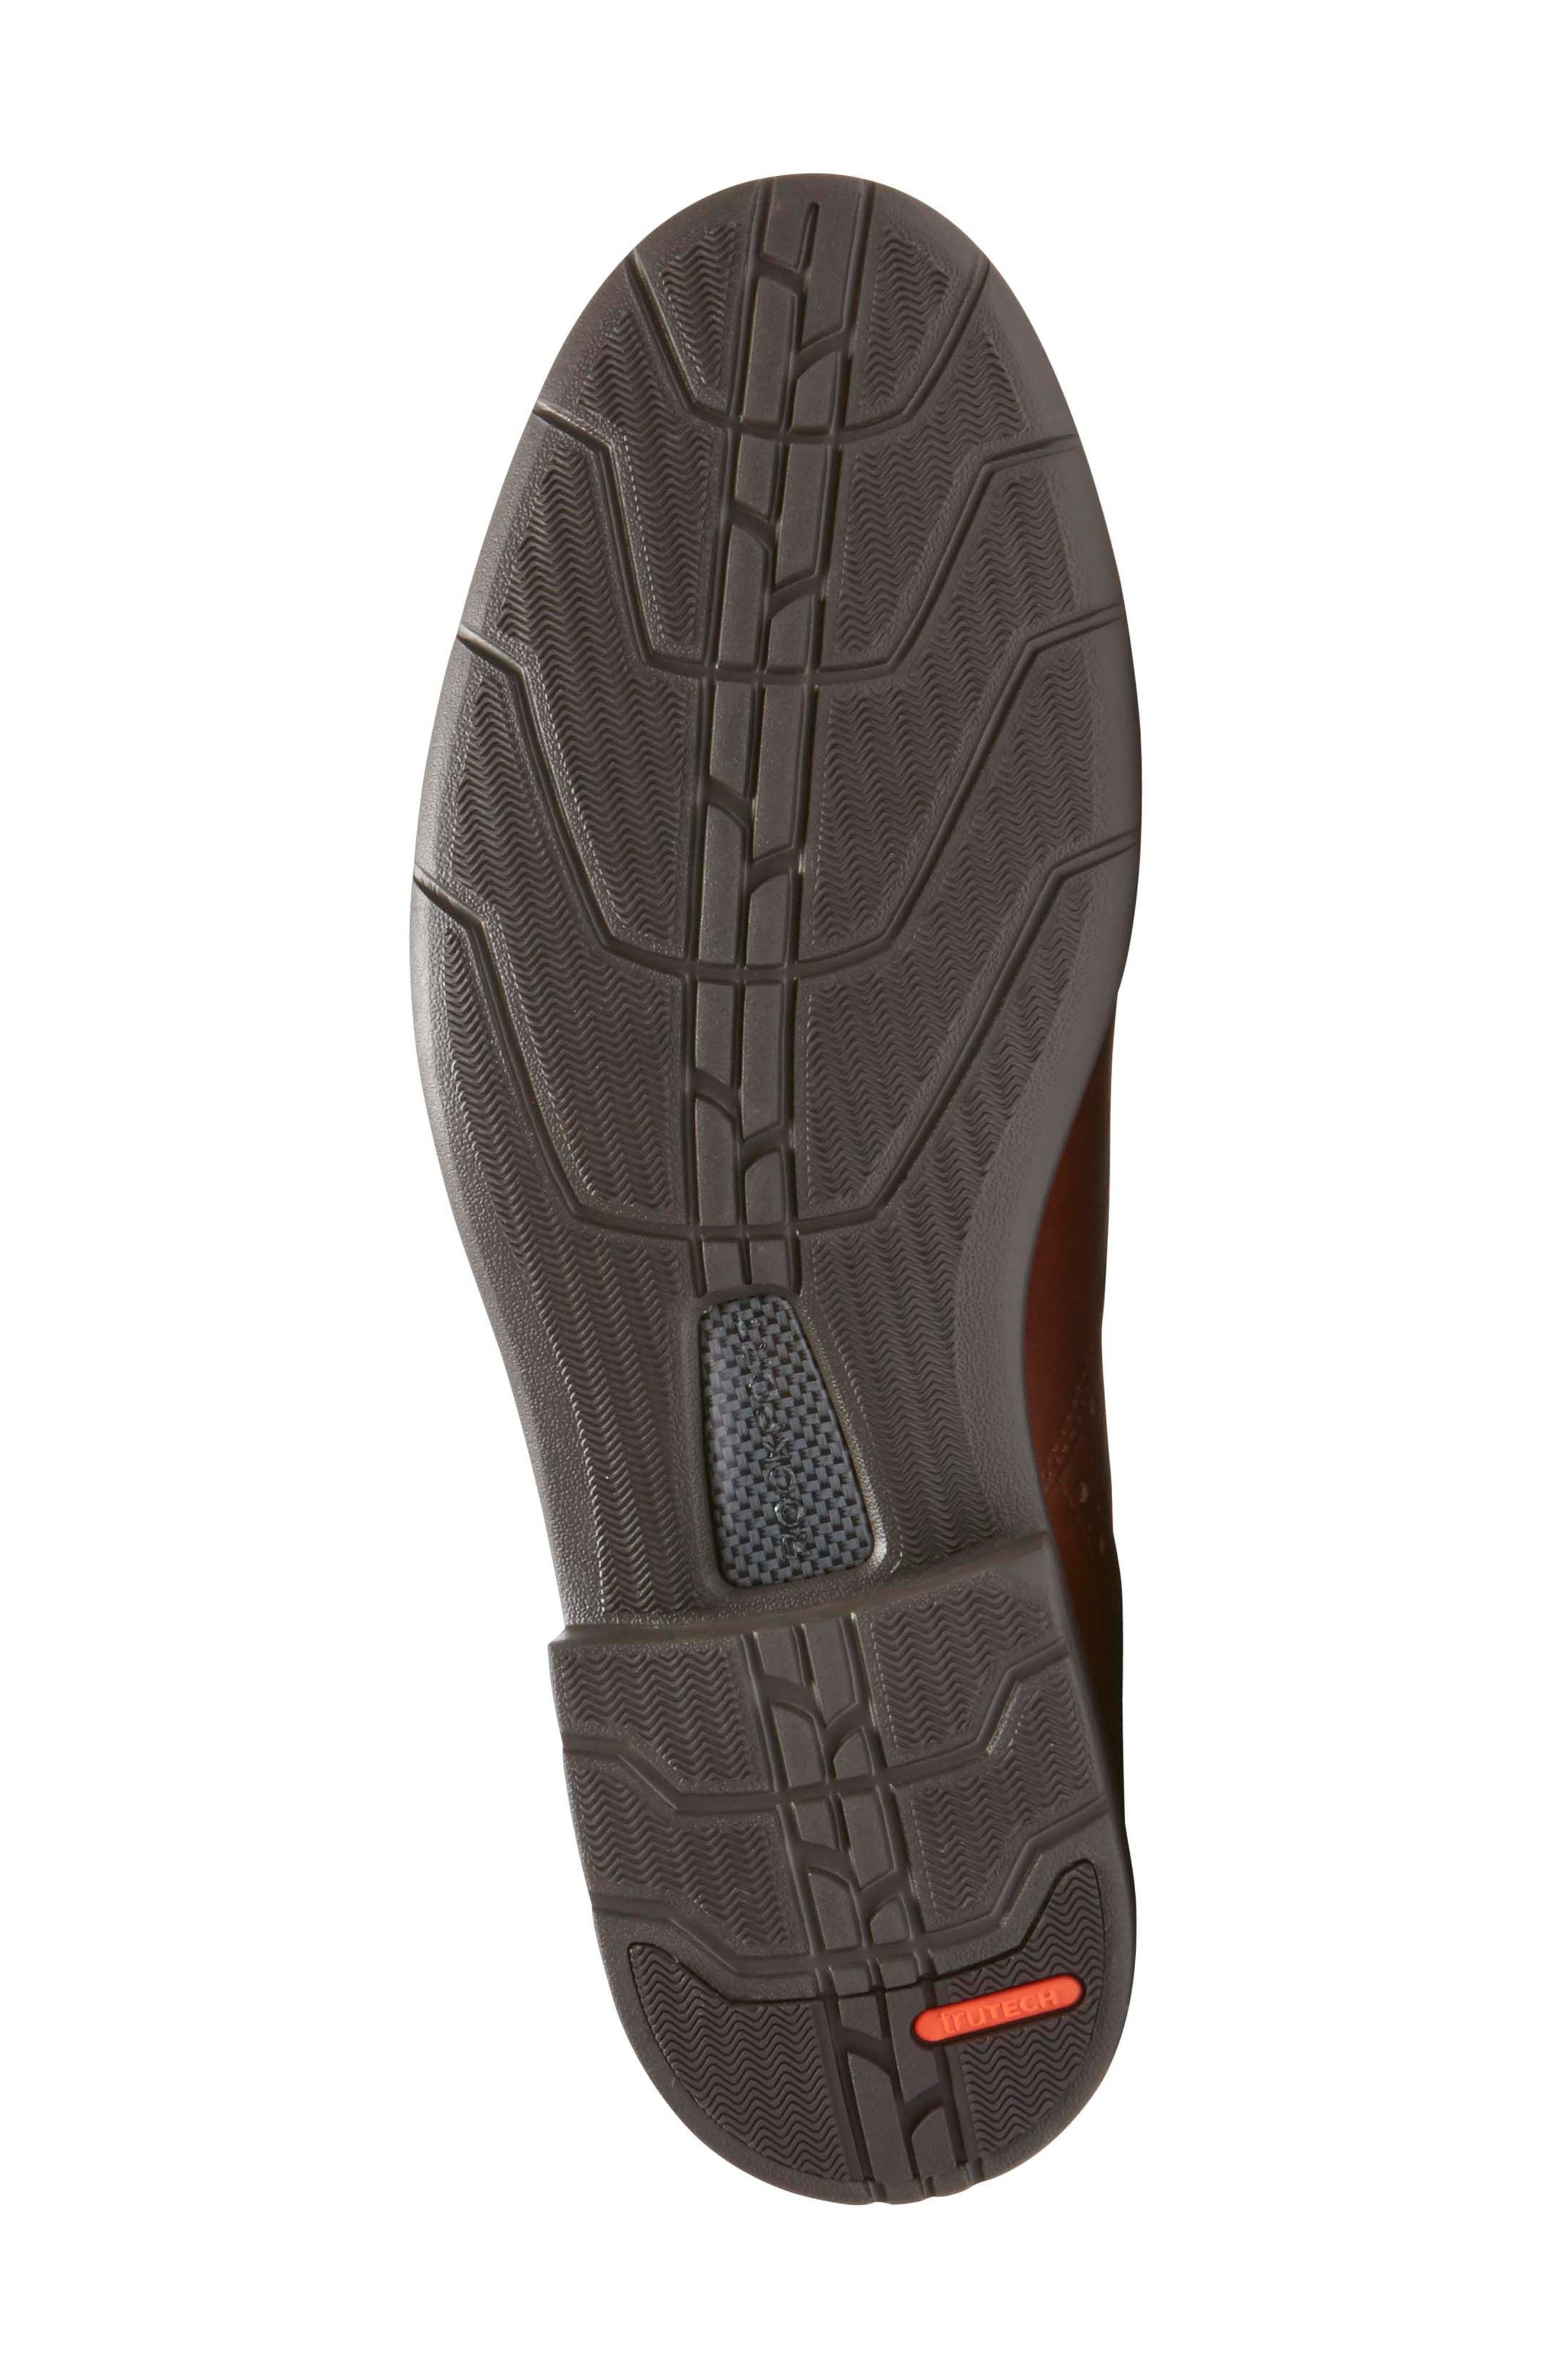 Total Motion Classic Dress Venetian Loafer,                             Alternate thumbnail 6, color,                             TAN LEATHER